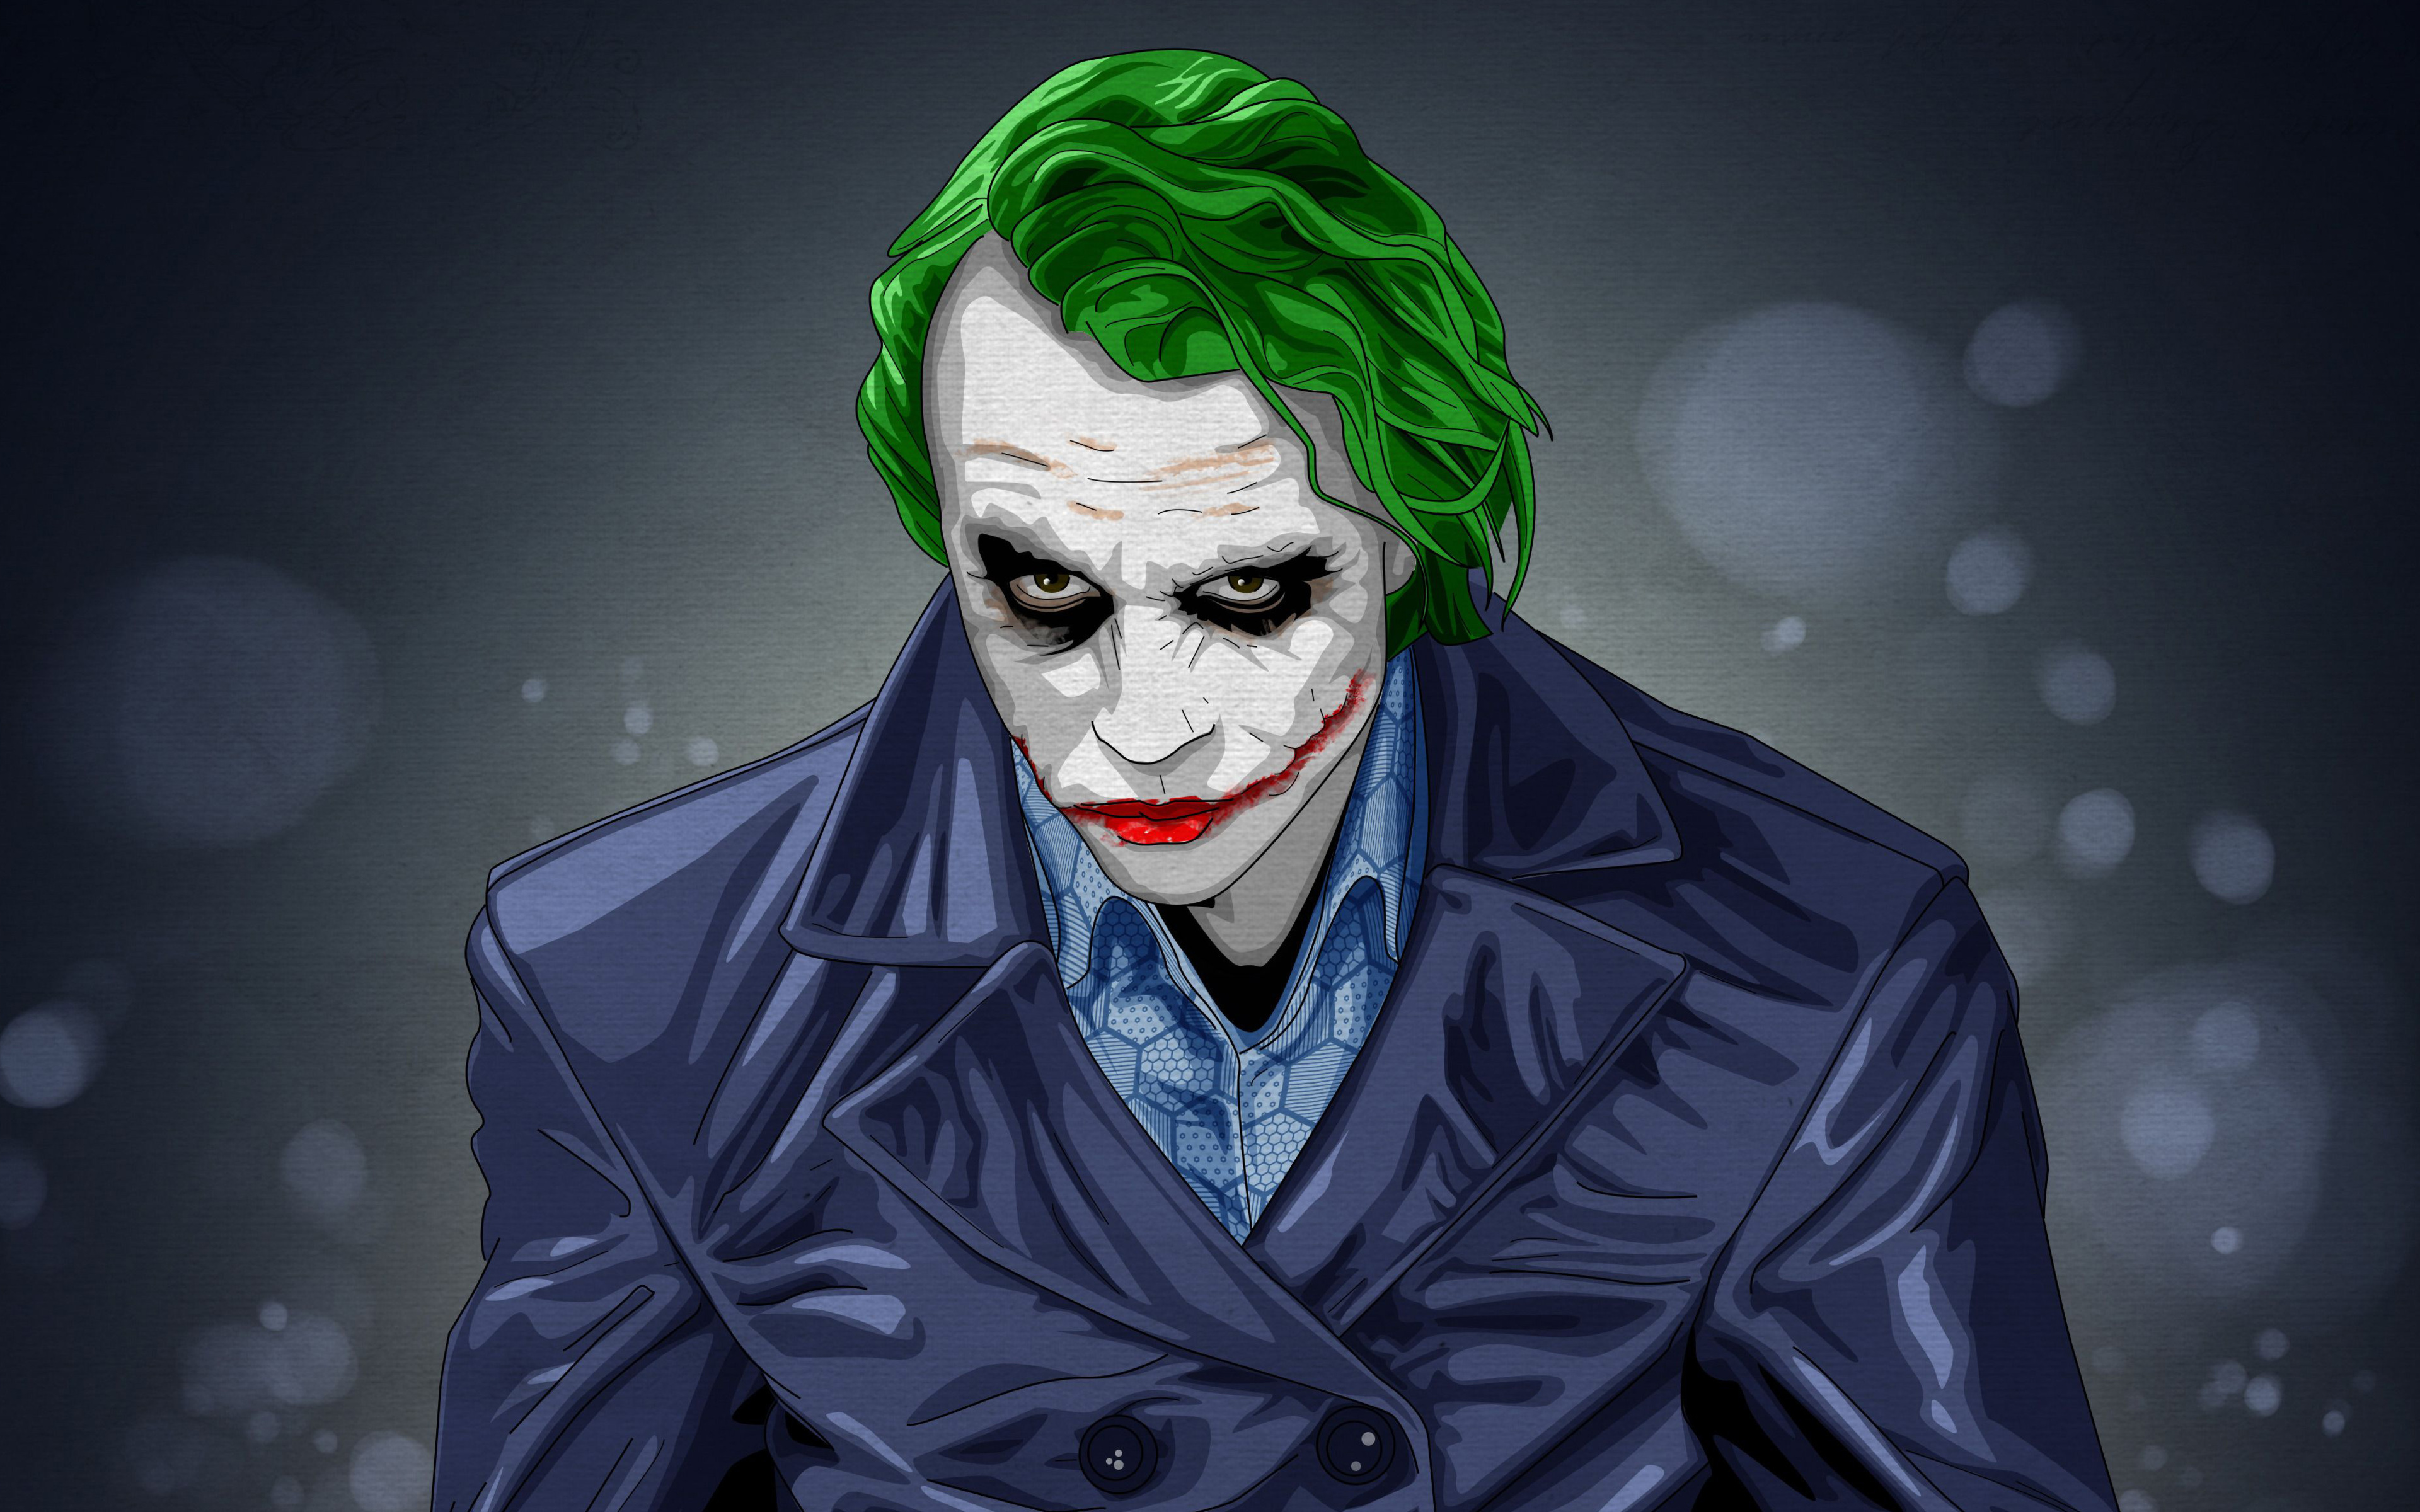 3840x2400 Joker Artwork 4k 4k Hd 4k Wallpapers Images Backgrounds Photos And Pictures